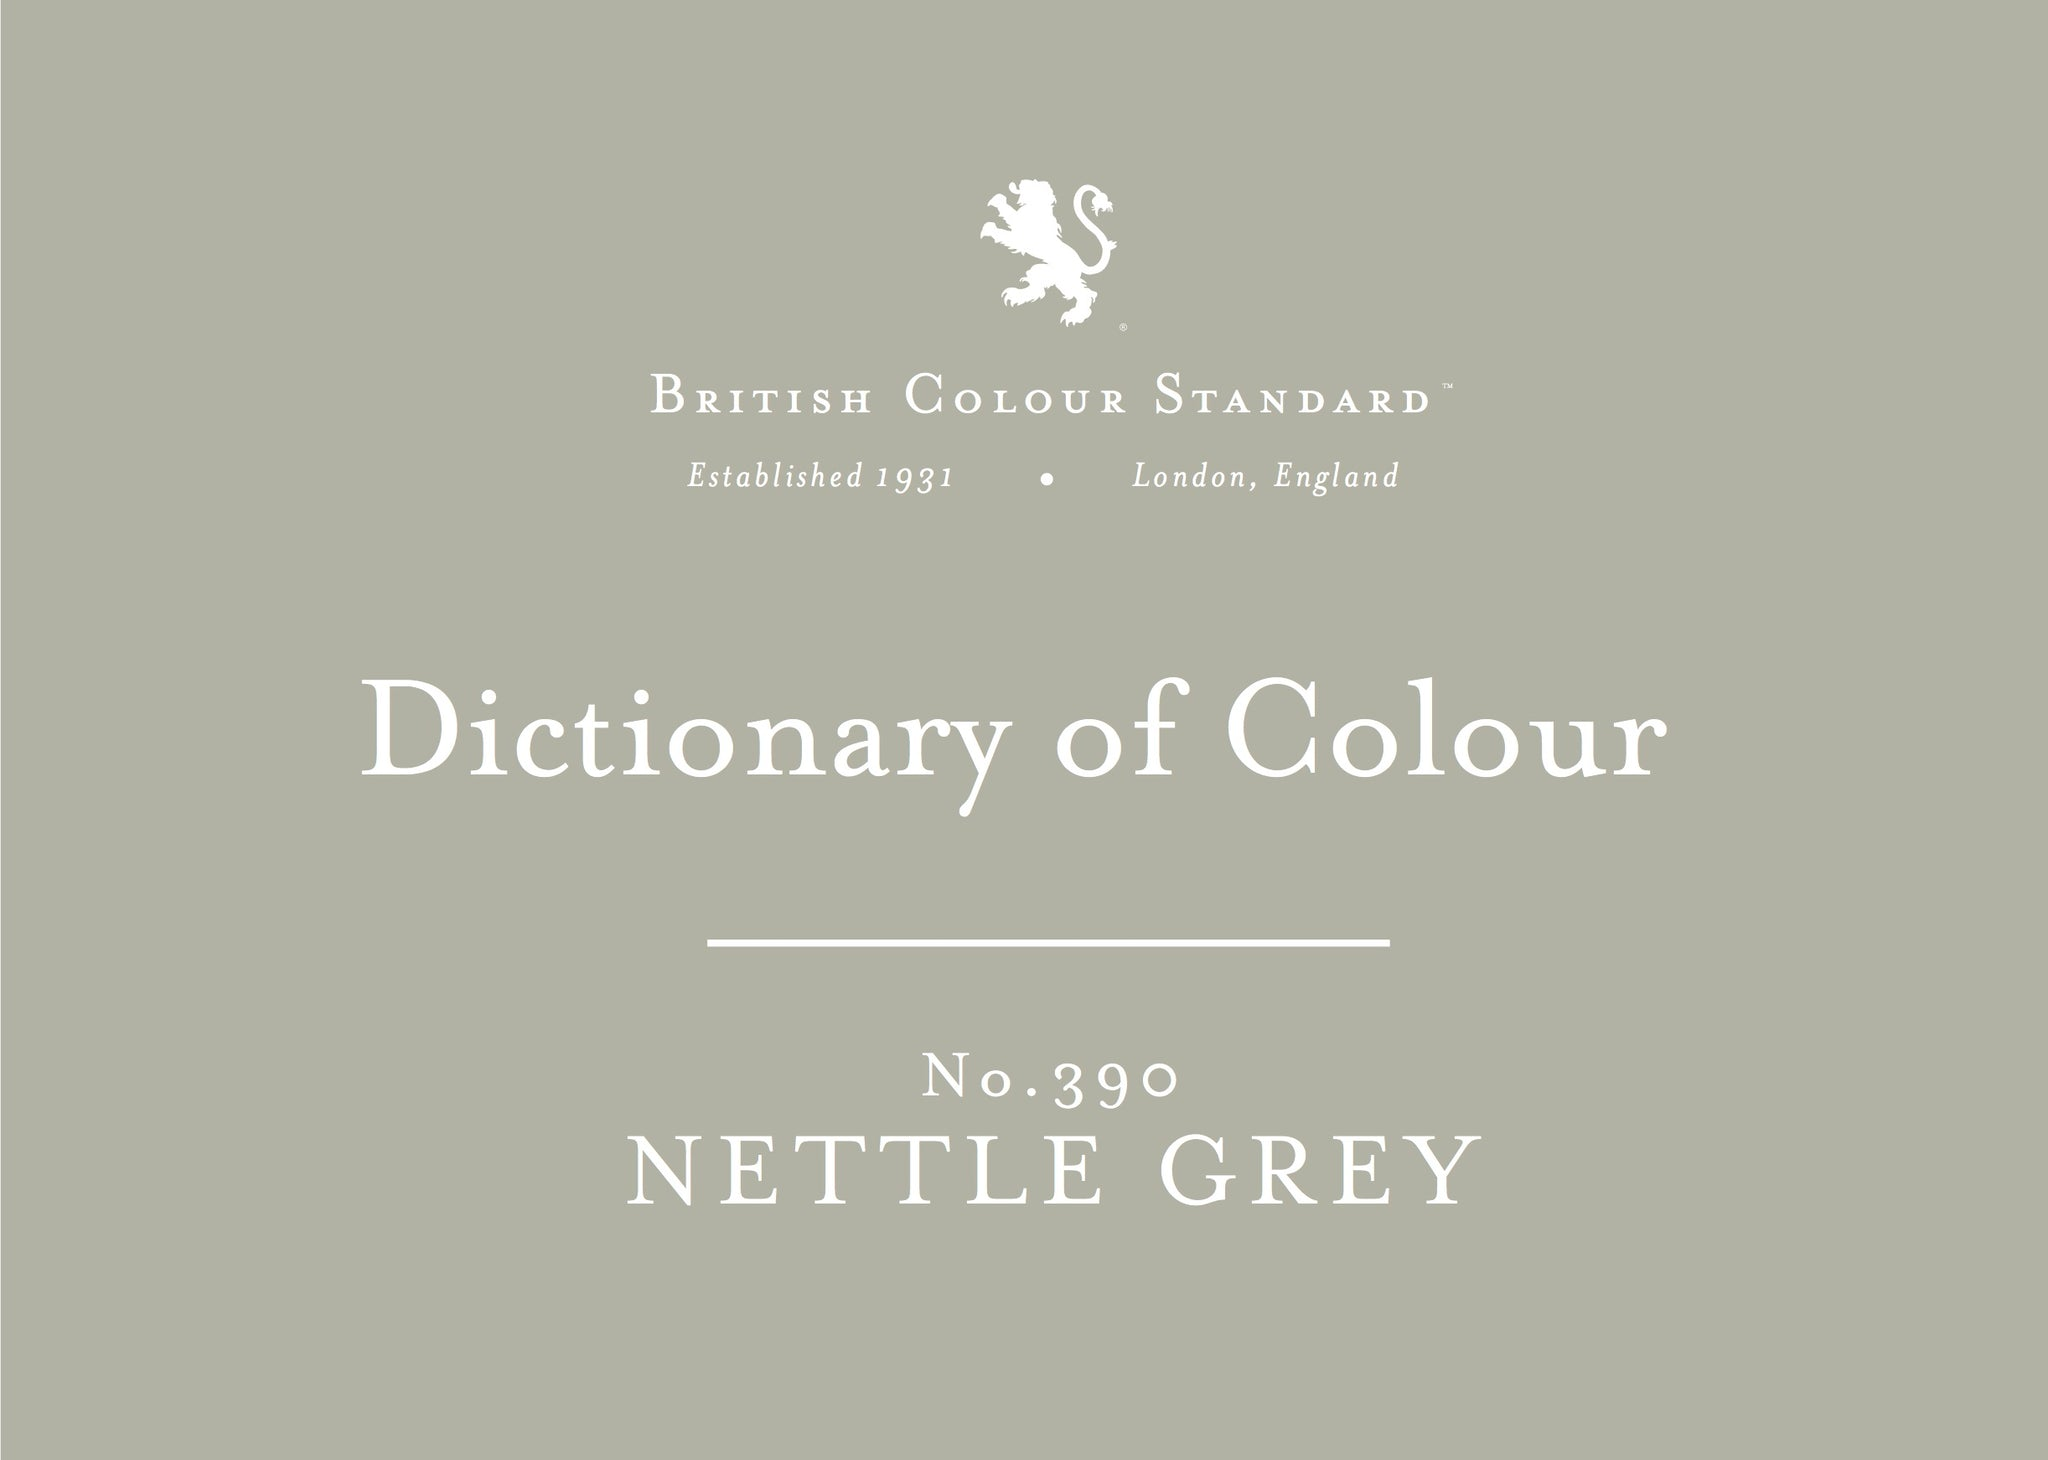 BRITISH COLOUR STANDARD - Nettle Grey No. 390